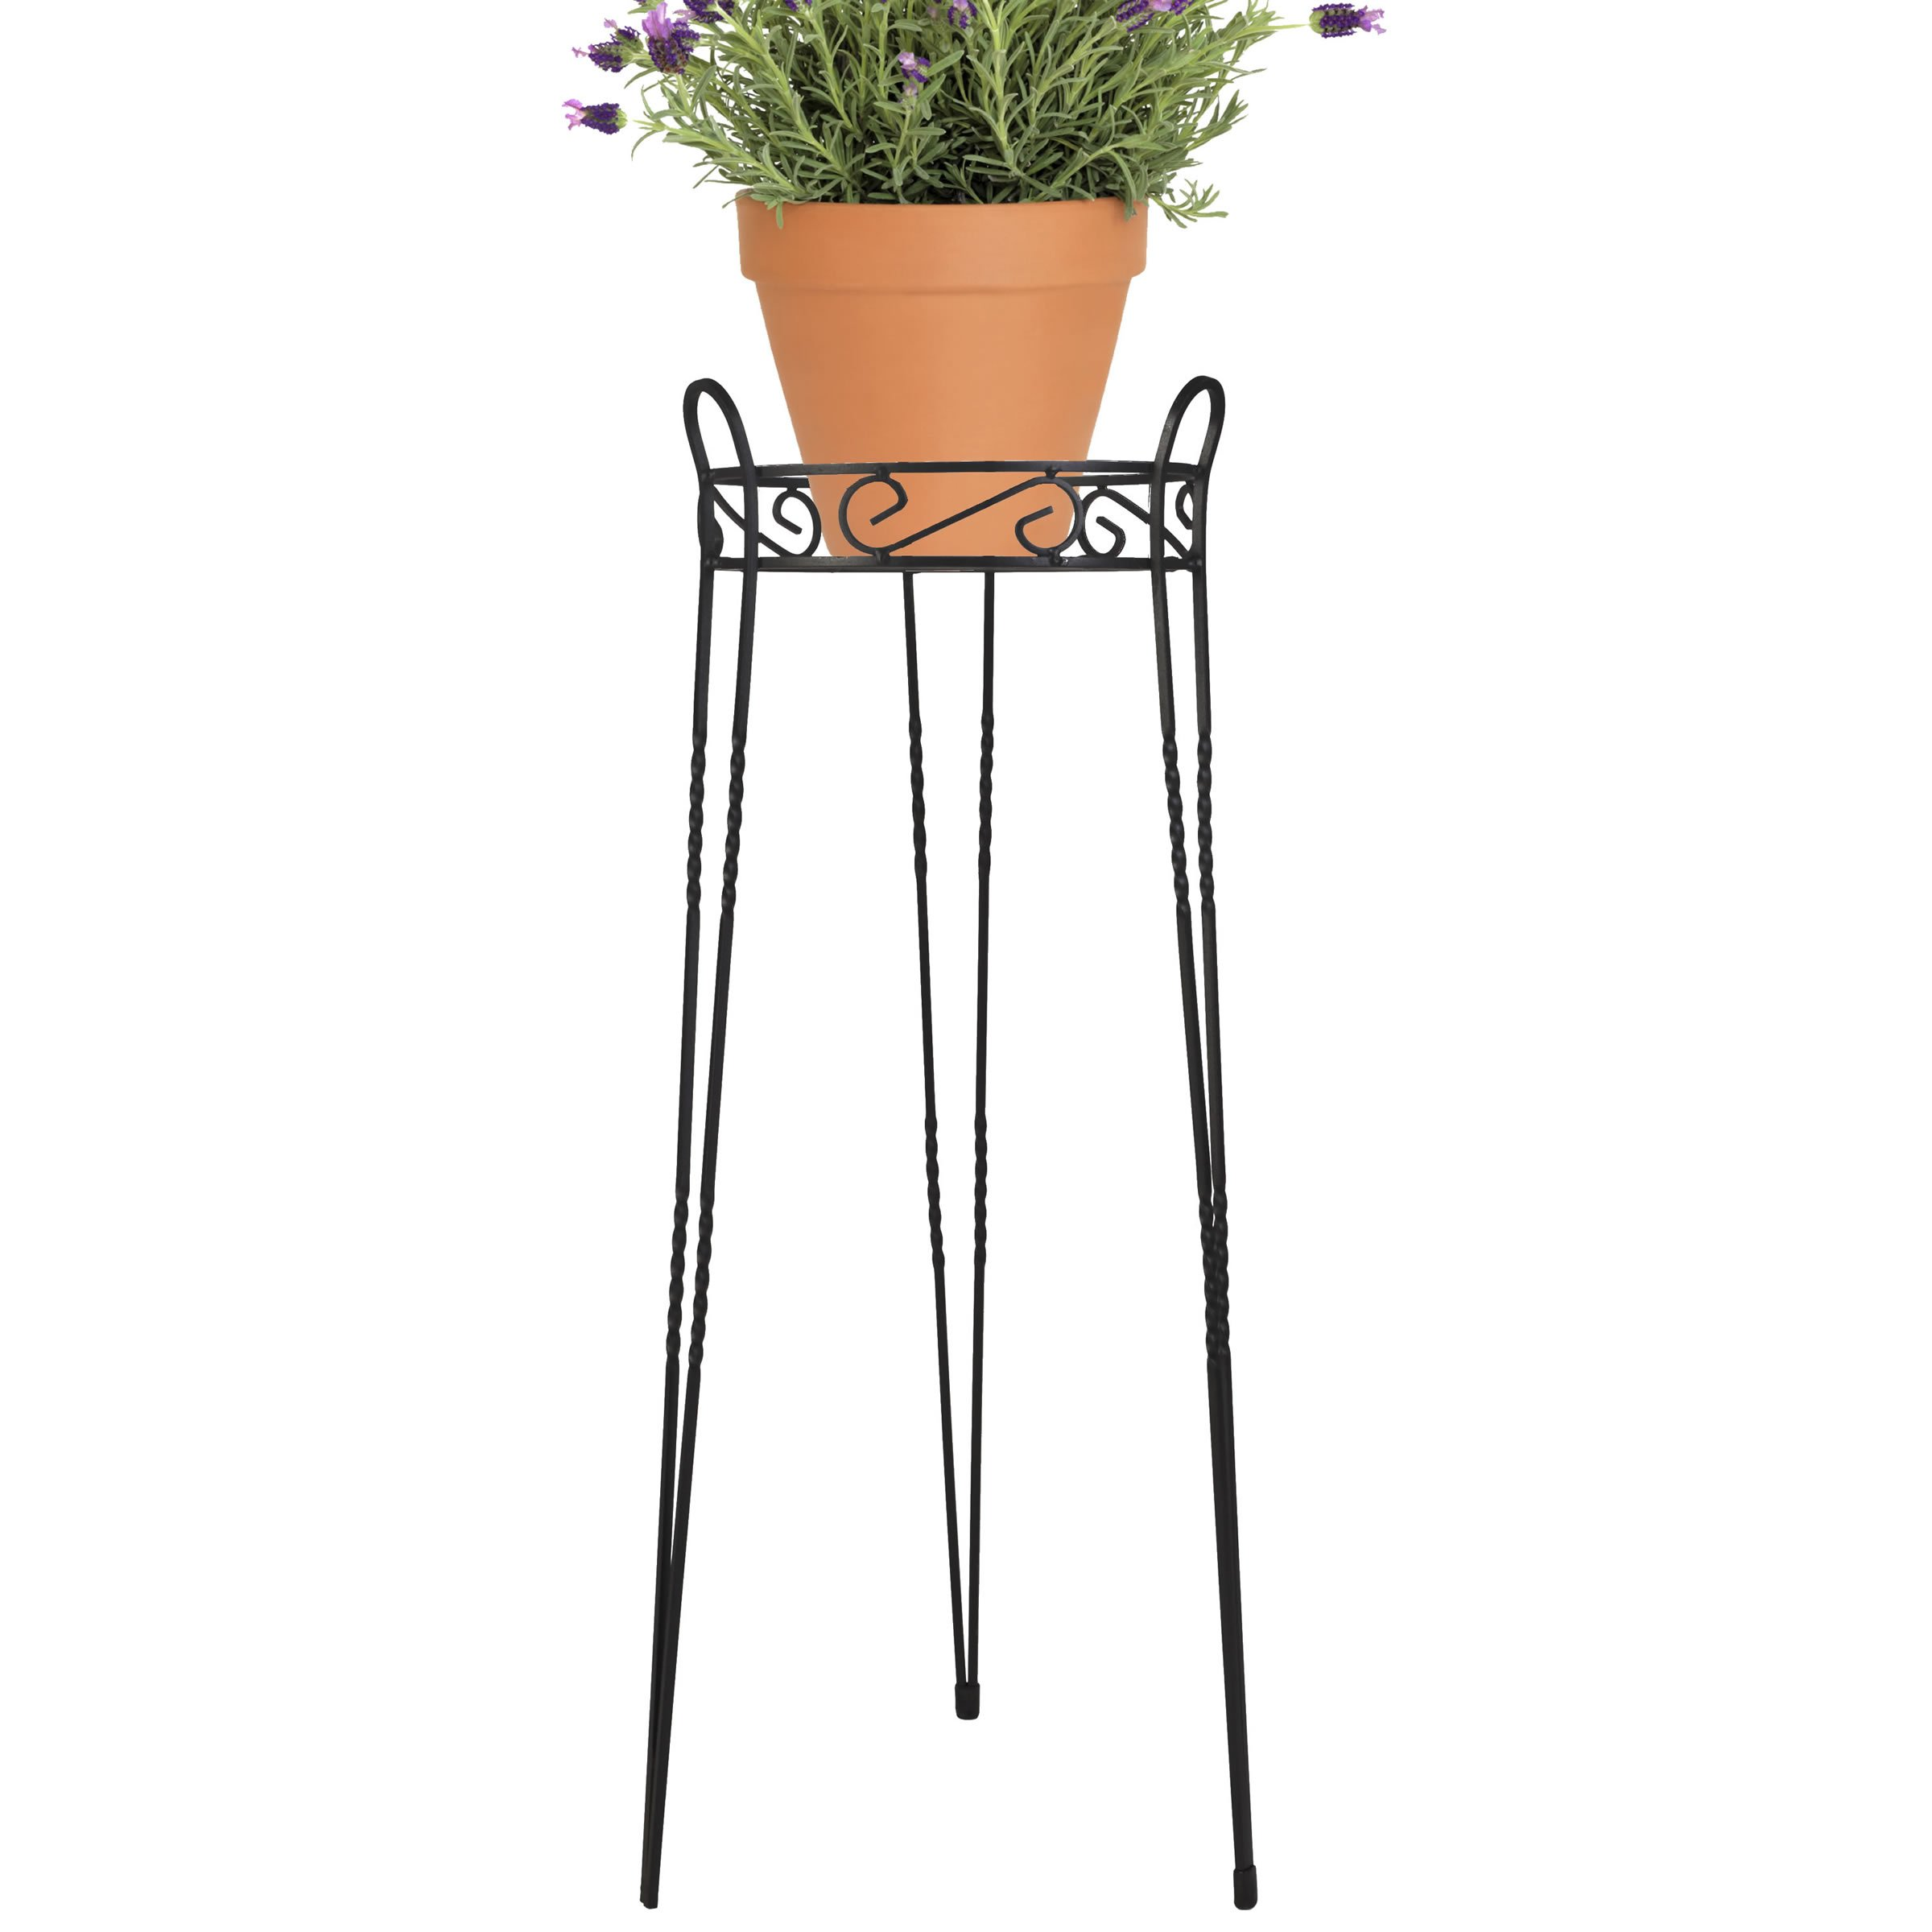 CobraCo Canterbury 30-Inch Black Scroll Top Plant Stand SCBPS1030-B